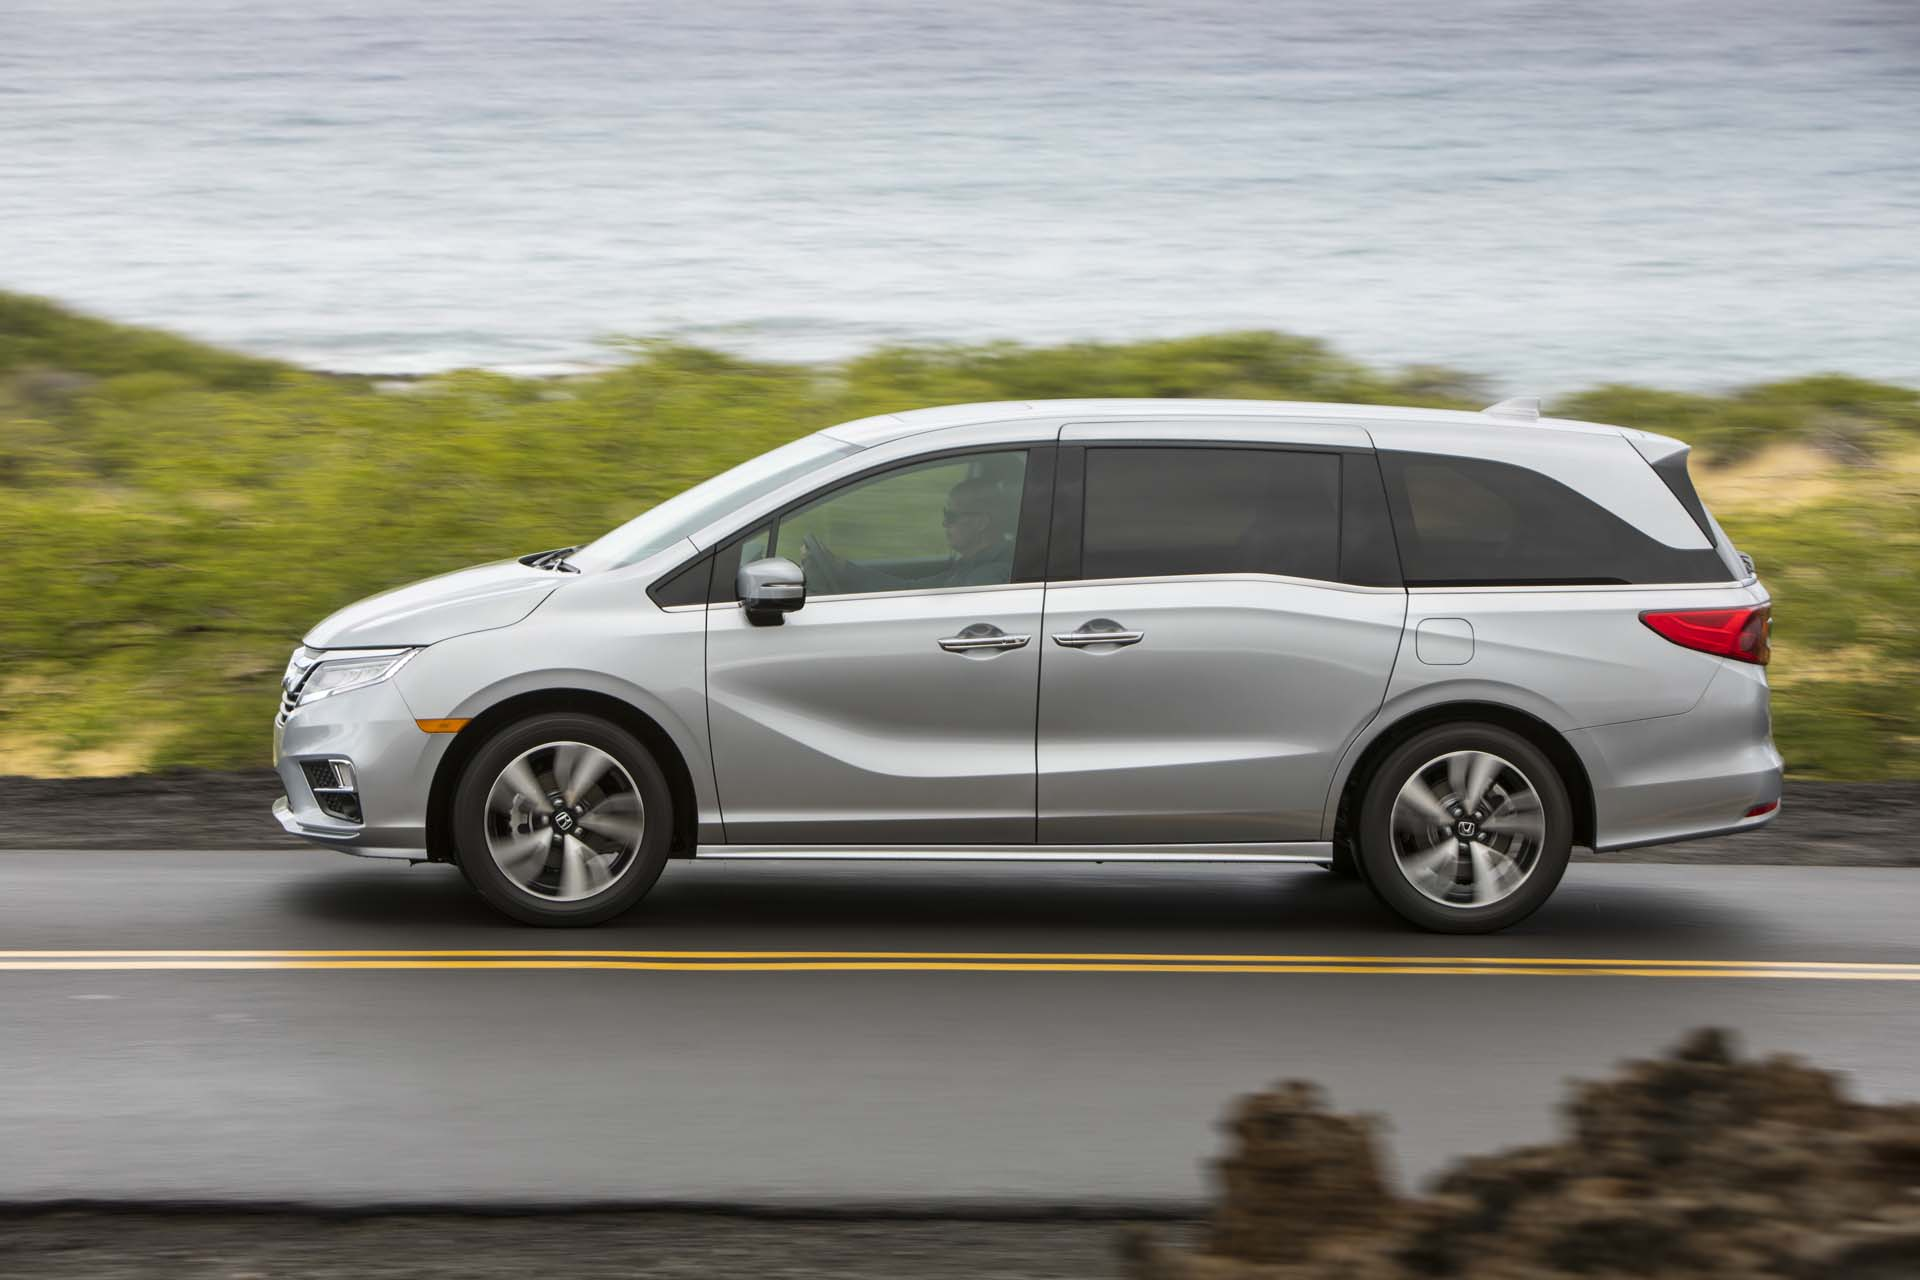 2019 honda odyssey review ratings specs prices and for 2019 honda odyssey